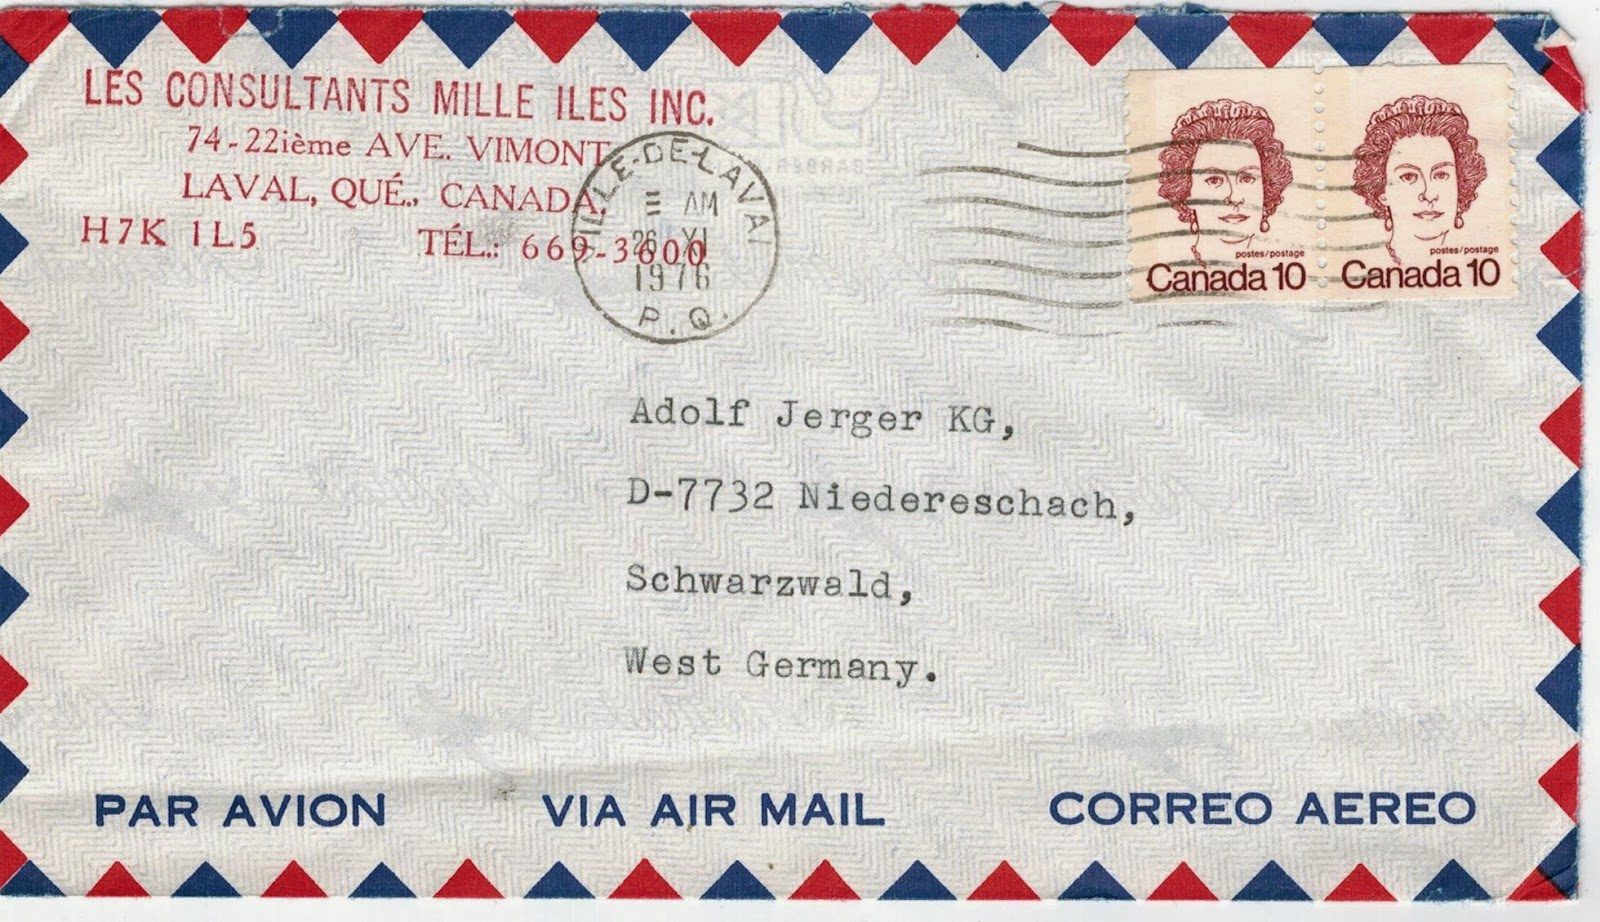 Postal History Corner: 20 Cent International Letter Rate Period 1976